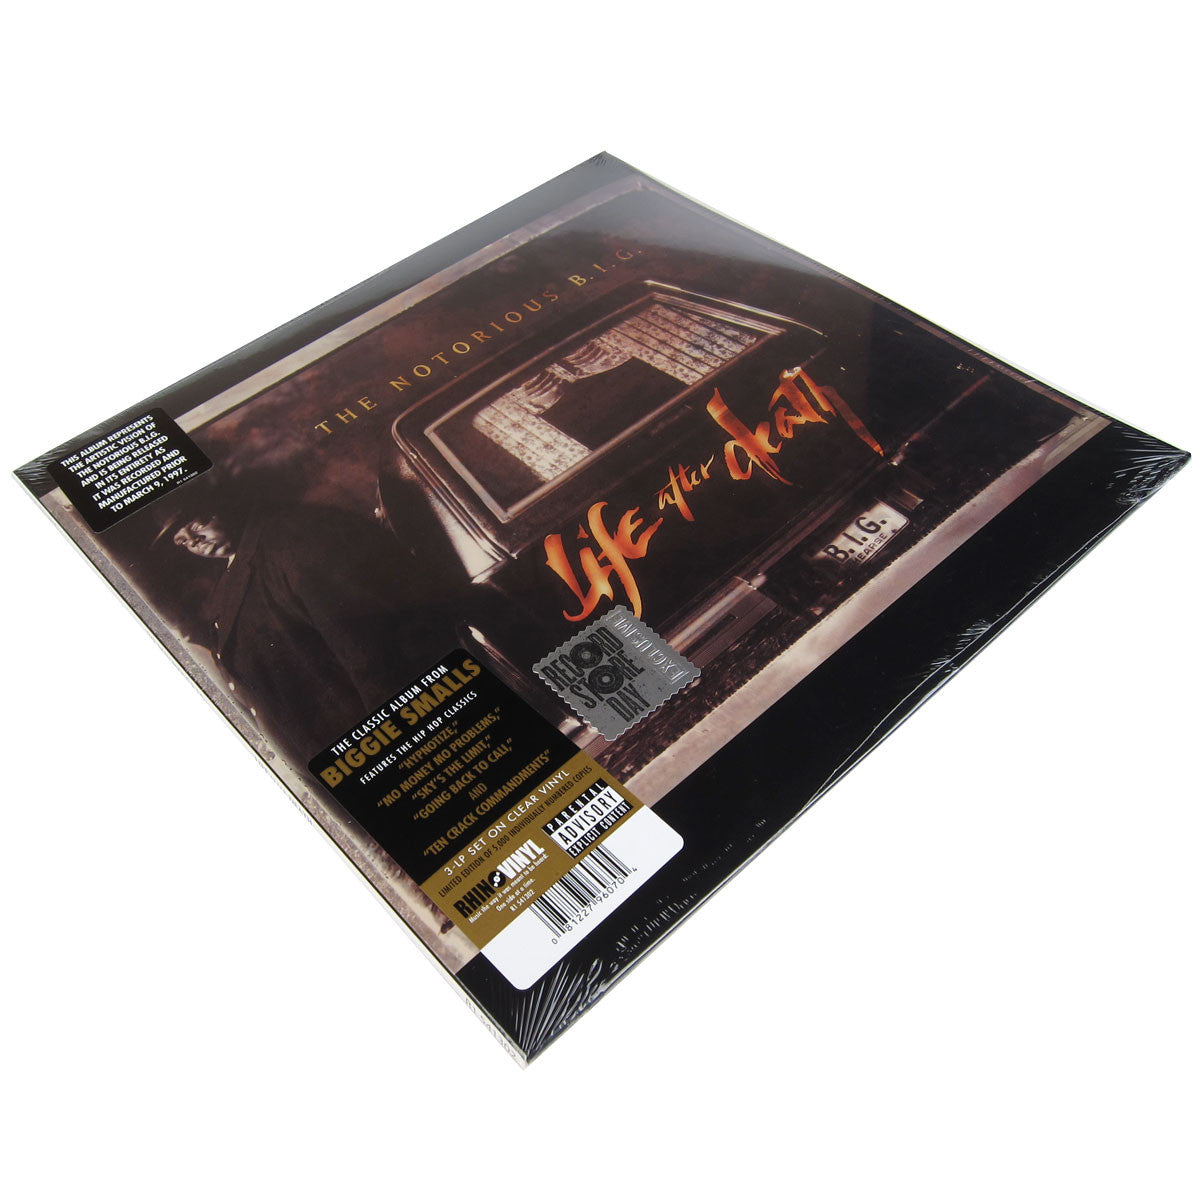 Notorious B.I.G.: Life After Death Clear Vinyl 3LP (Record Store Day 2014)